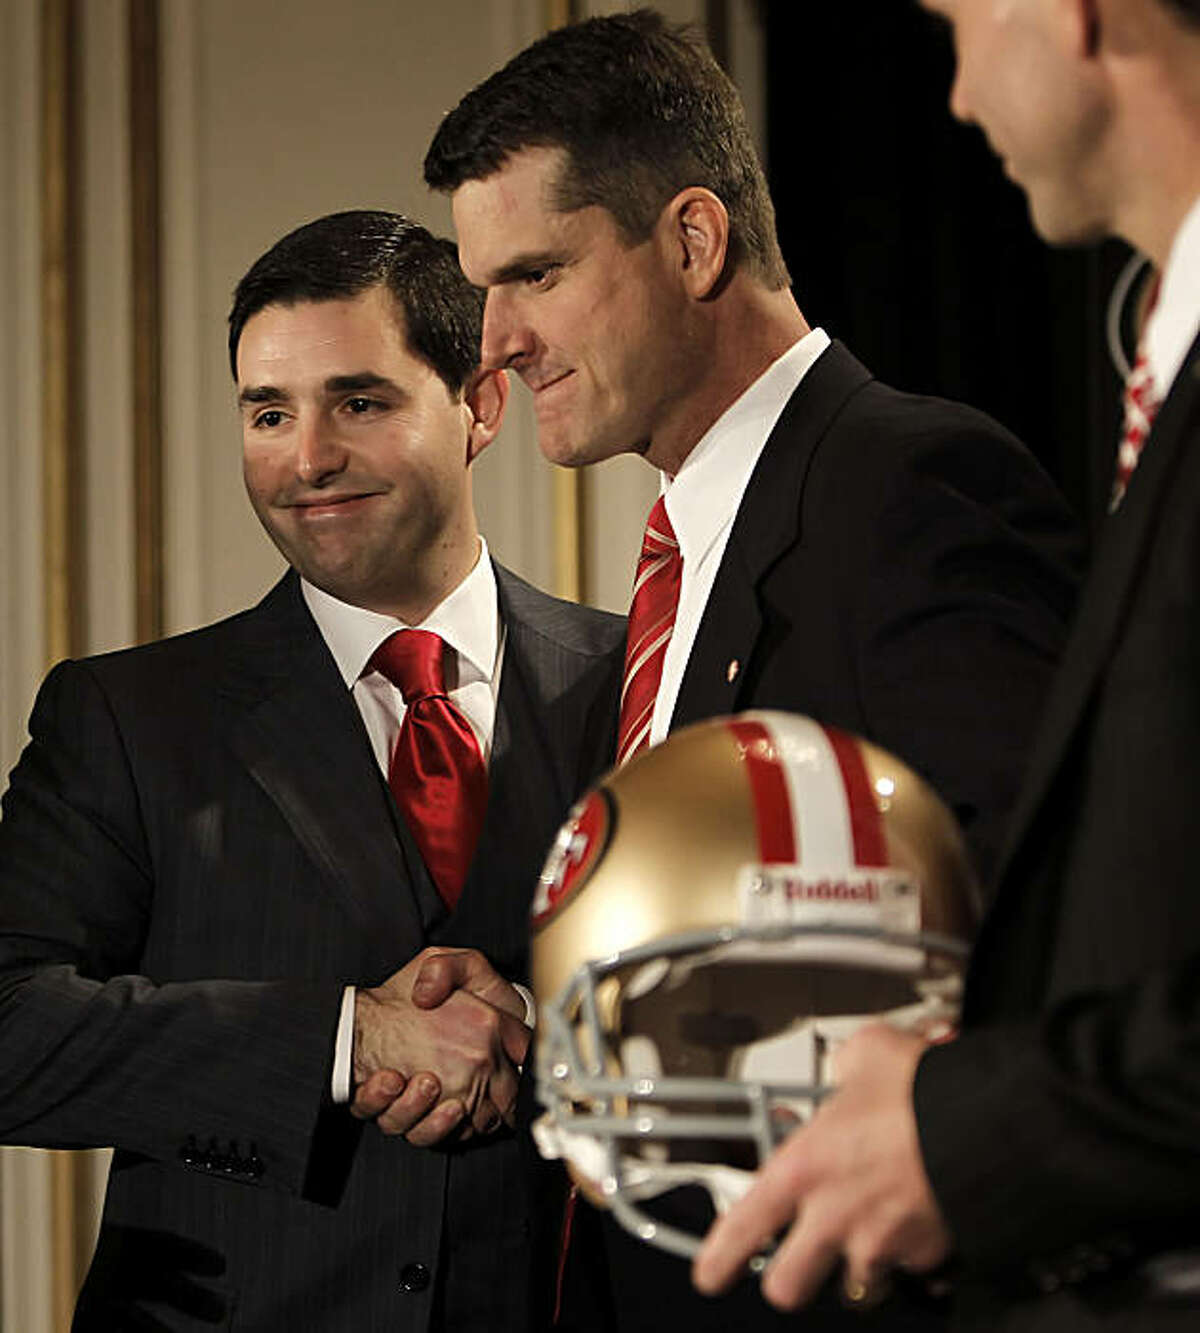 Jed York (left) shakes hands with the new head coach of the San Francisco 49ers, Jim Harbaugh, at a news conference in San Francisco on Friday.